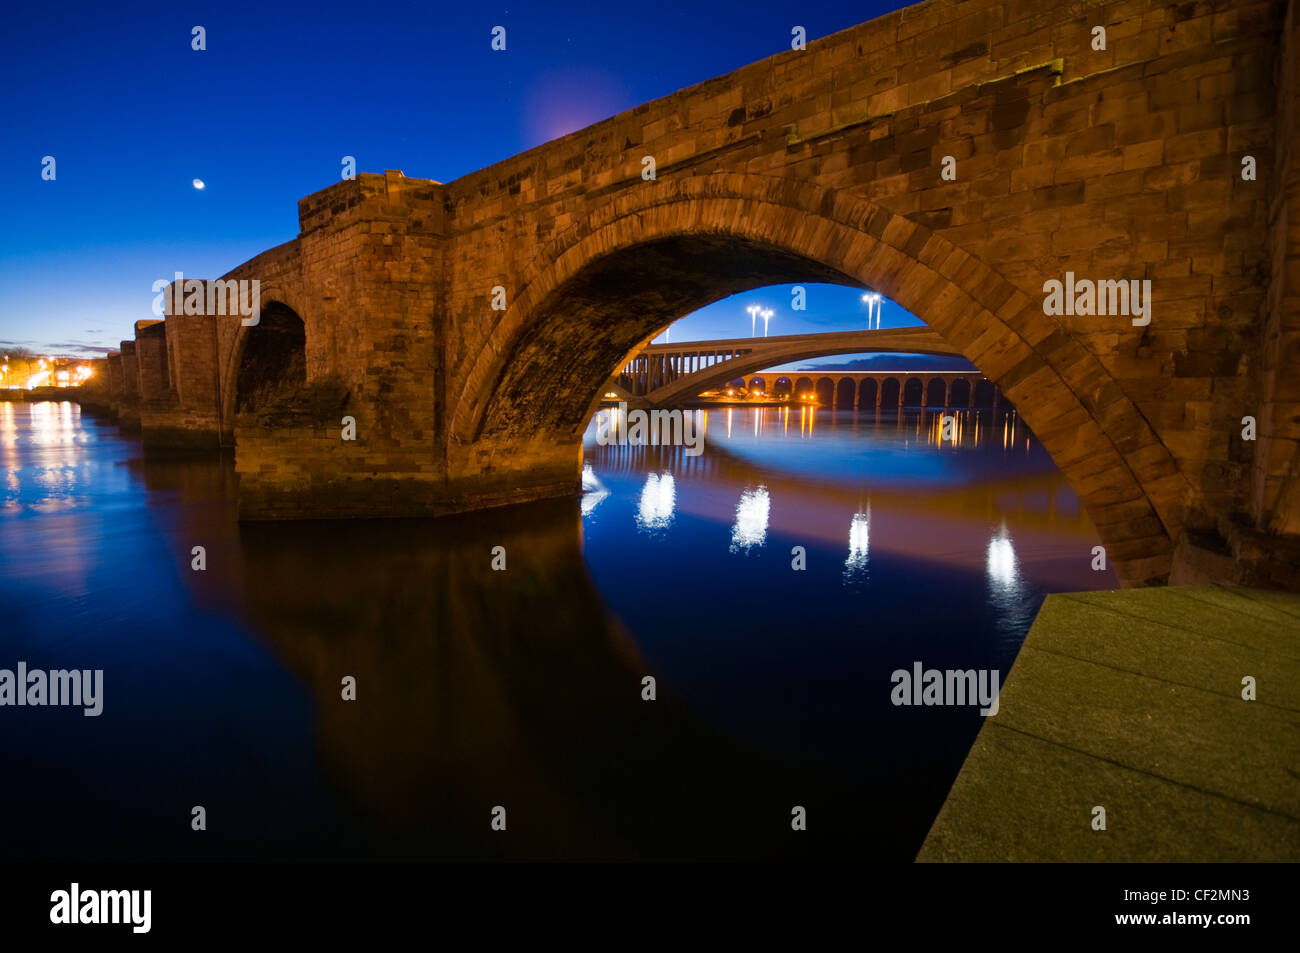 A night view of the bridges of Berwick upon Tweed, with the Old Bridge built between 1610 and 1624, then the Royal - Stock Image